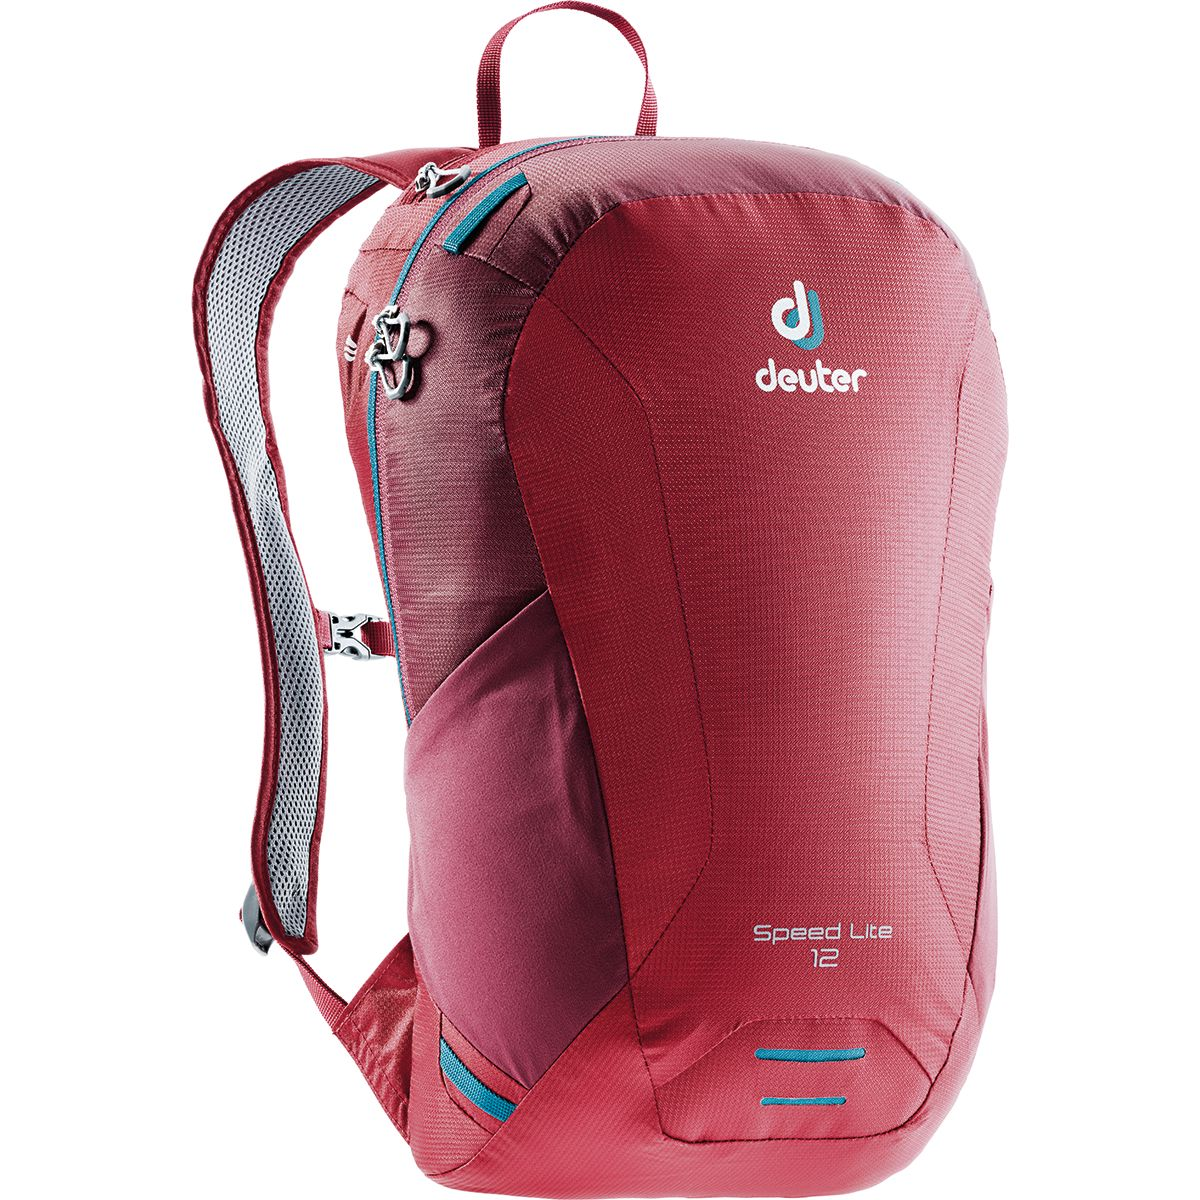 Image of Deuter Speed Lite 12 Rucksack (Rot)